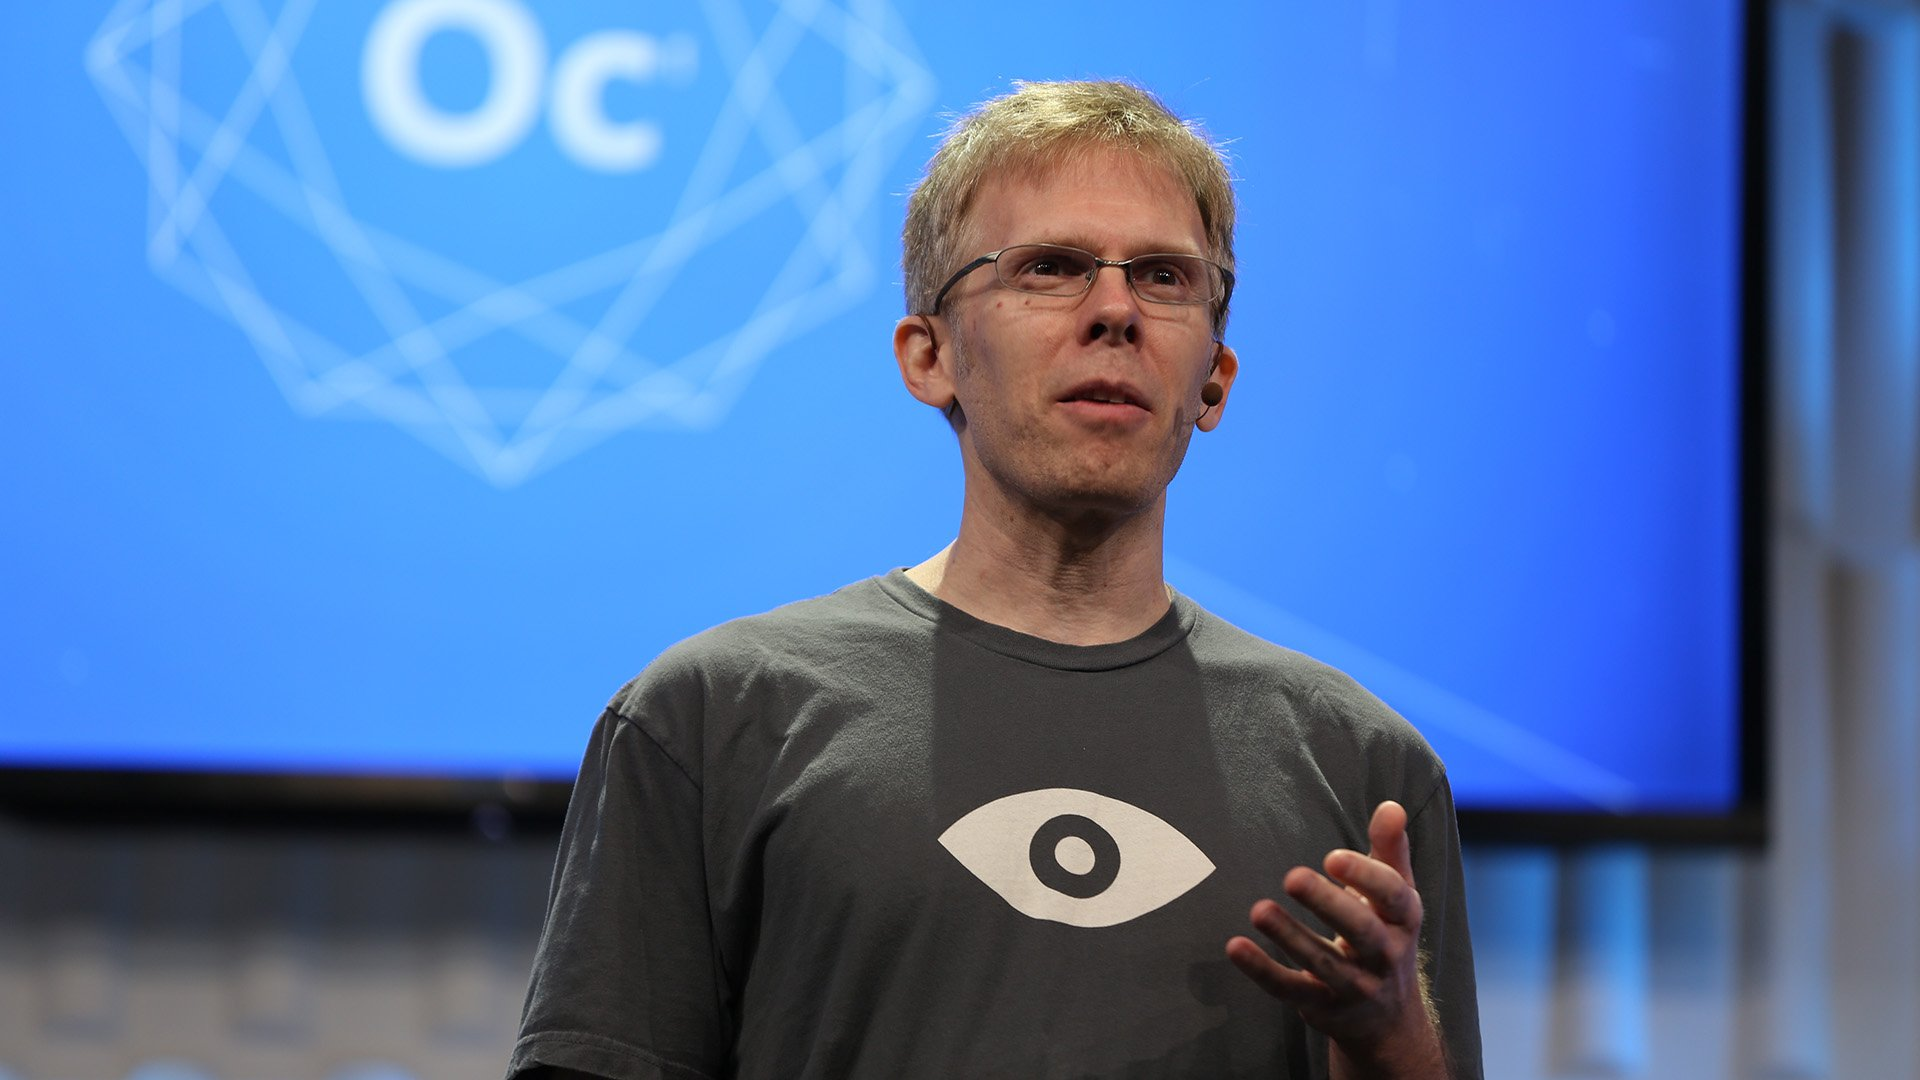 Modojo | Oculus CTO John Carmack Discusses The Future Of Mobile VR